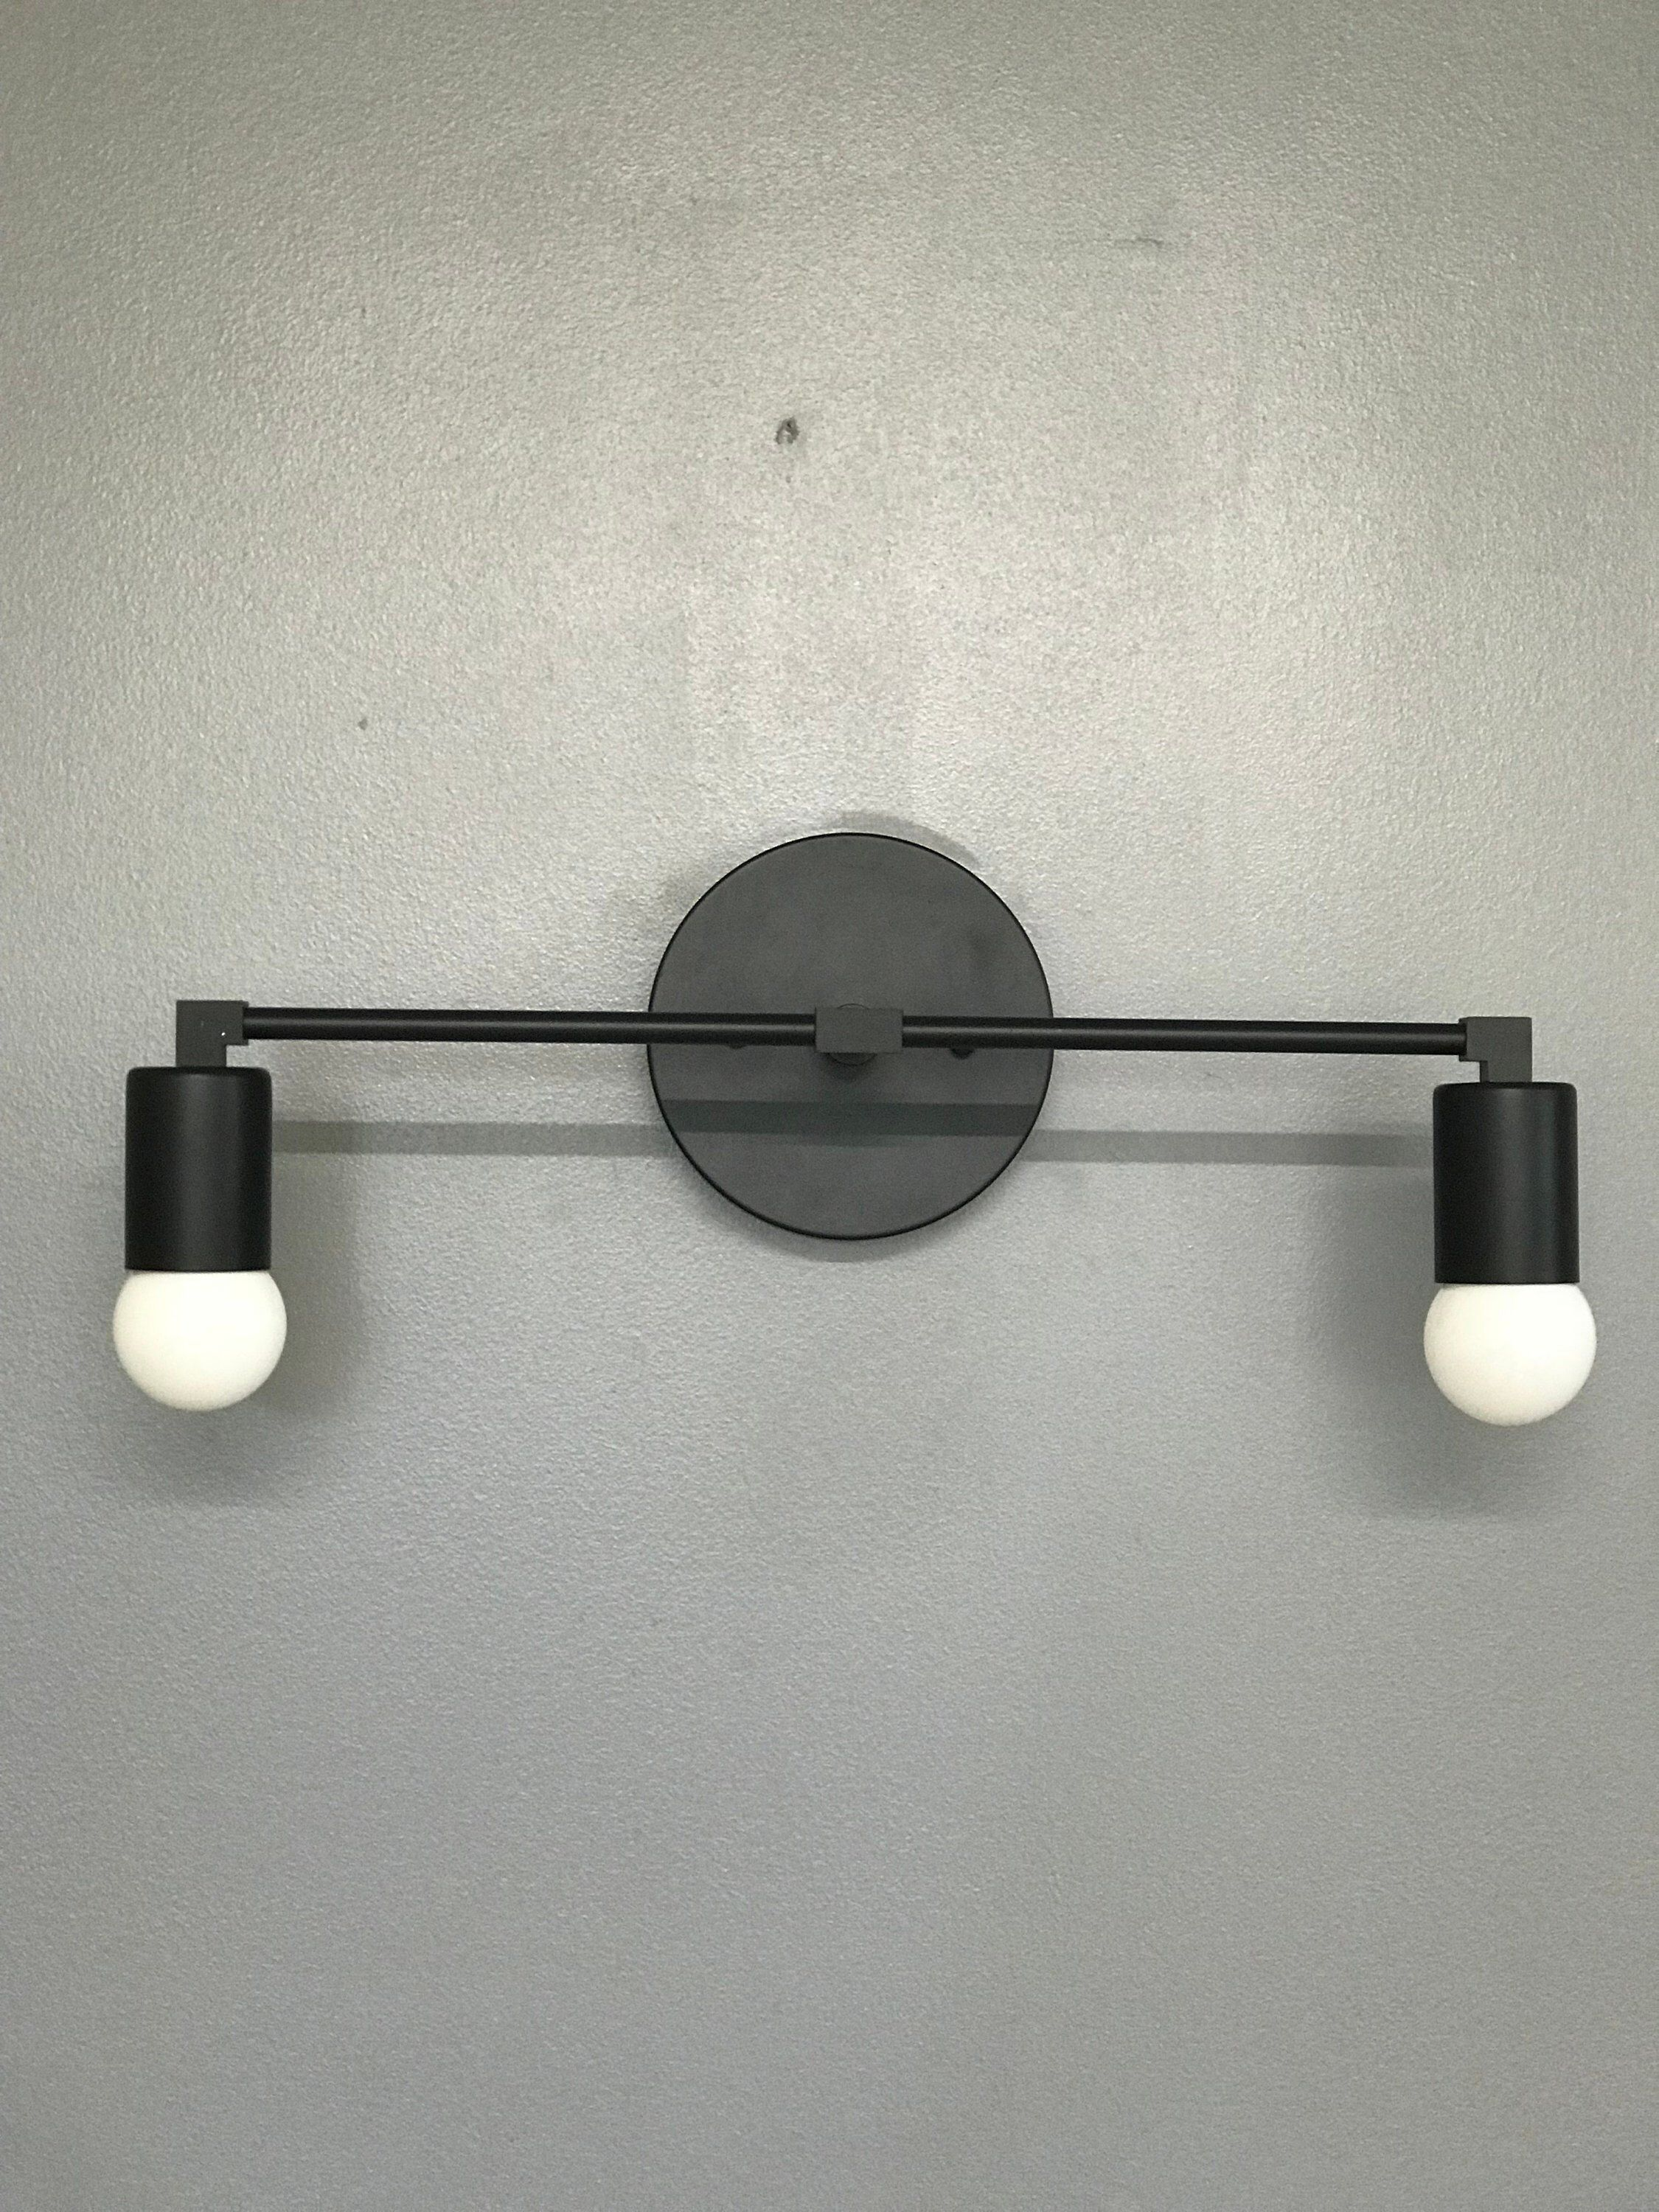 Matte Black Wall Sconce 2 Bulb Vanity Light Fixture Bathroom Lighting Mid Century Modern Fixture Contemporary Lighting Huisdecoratie